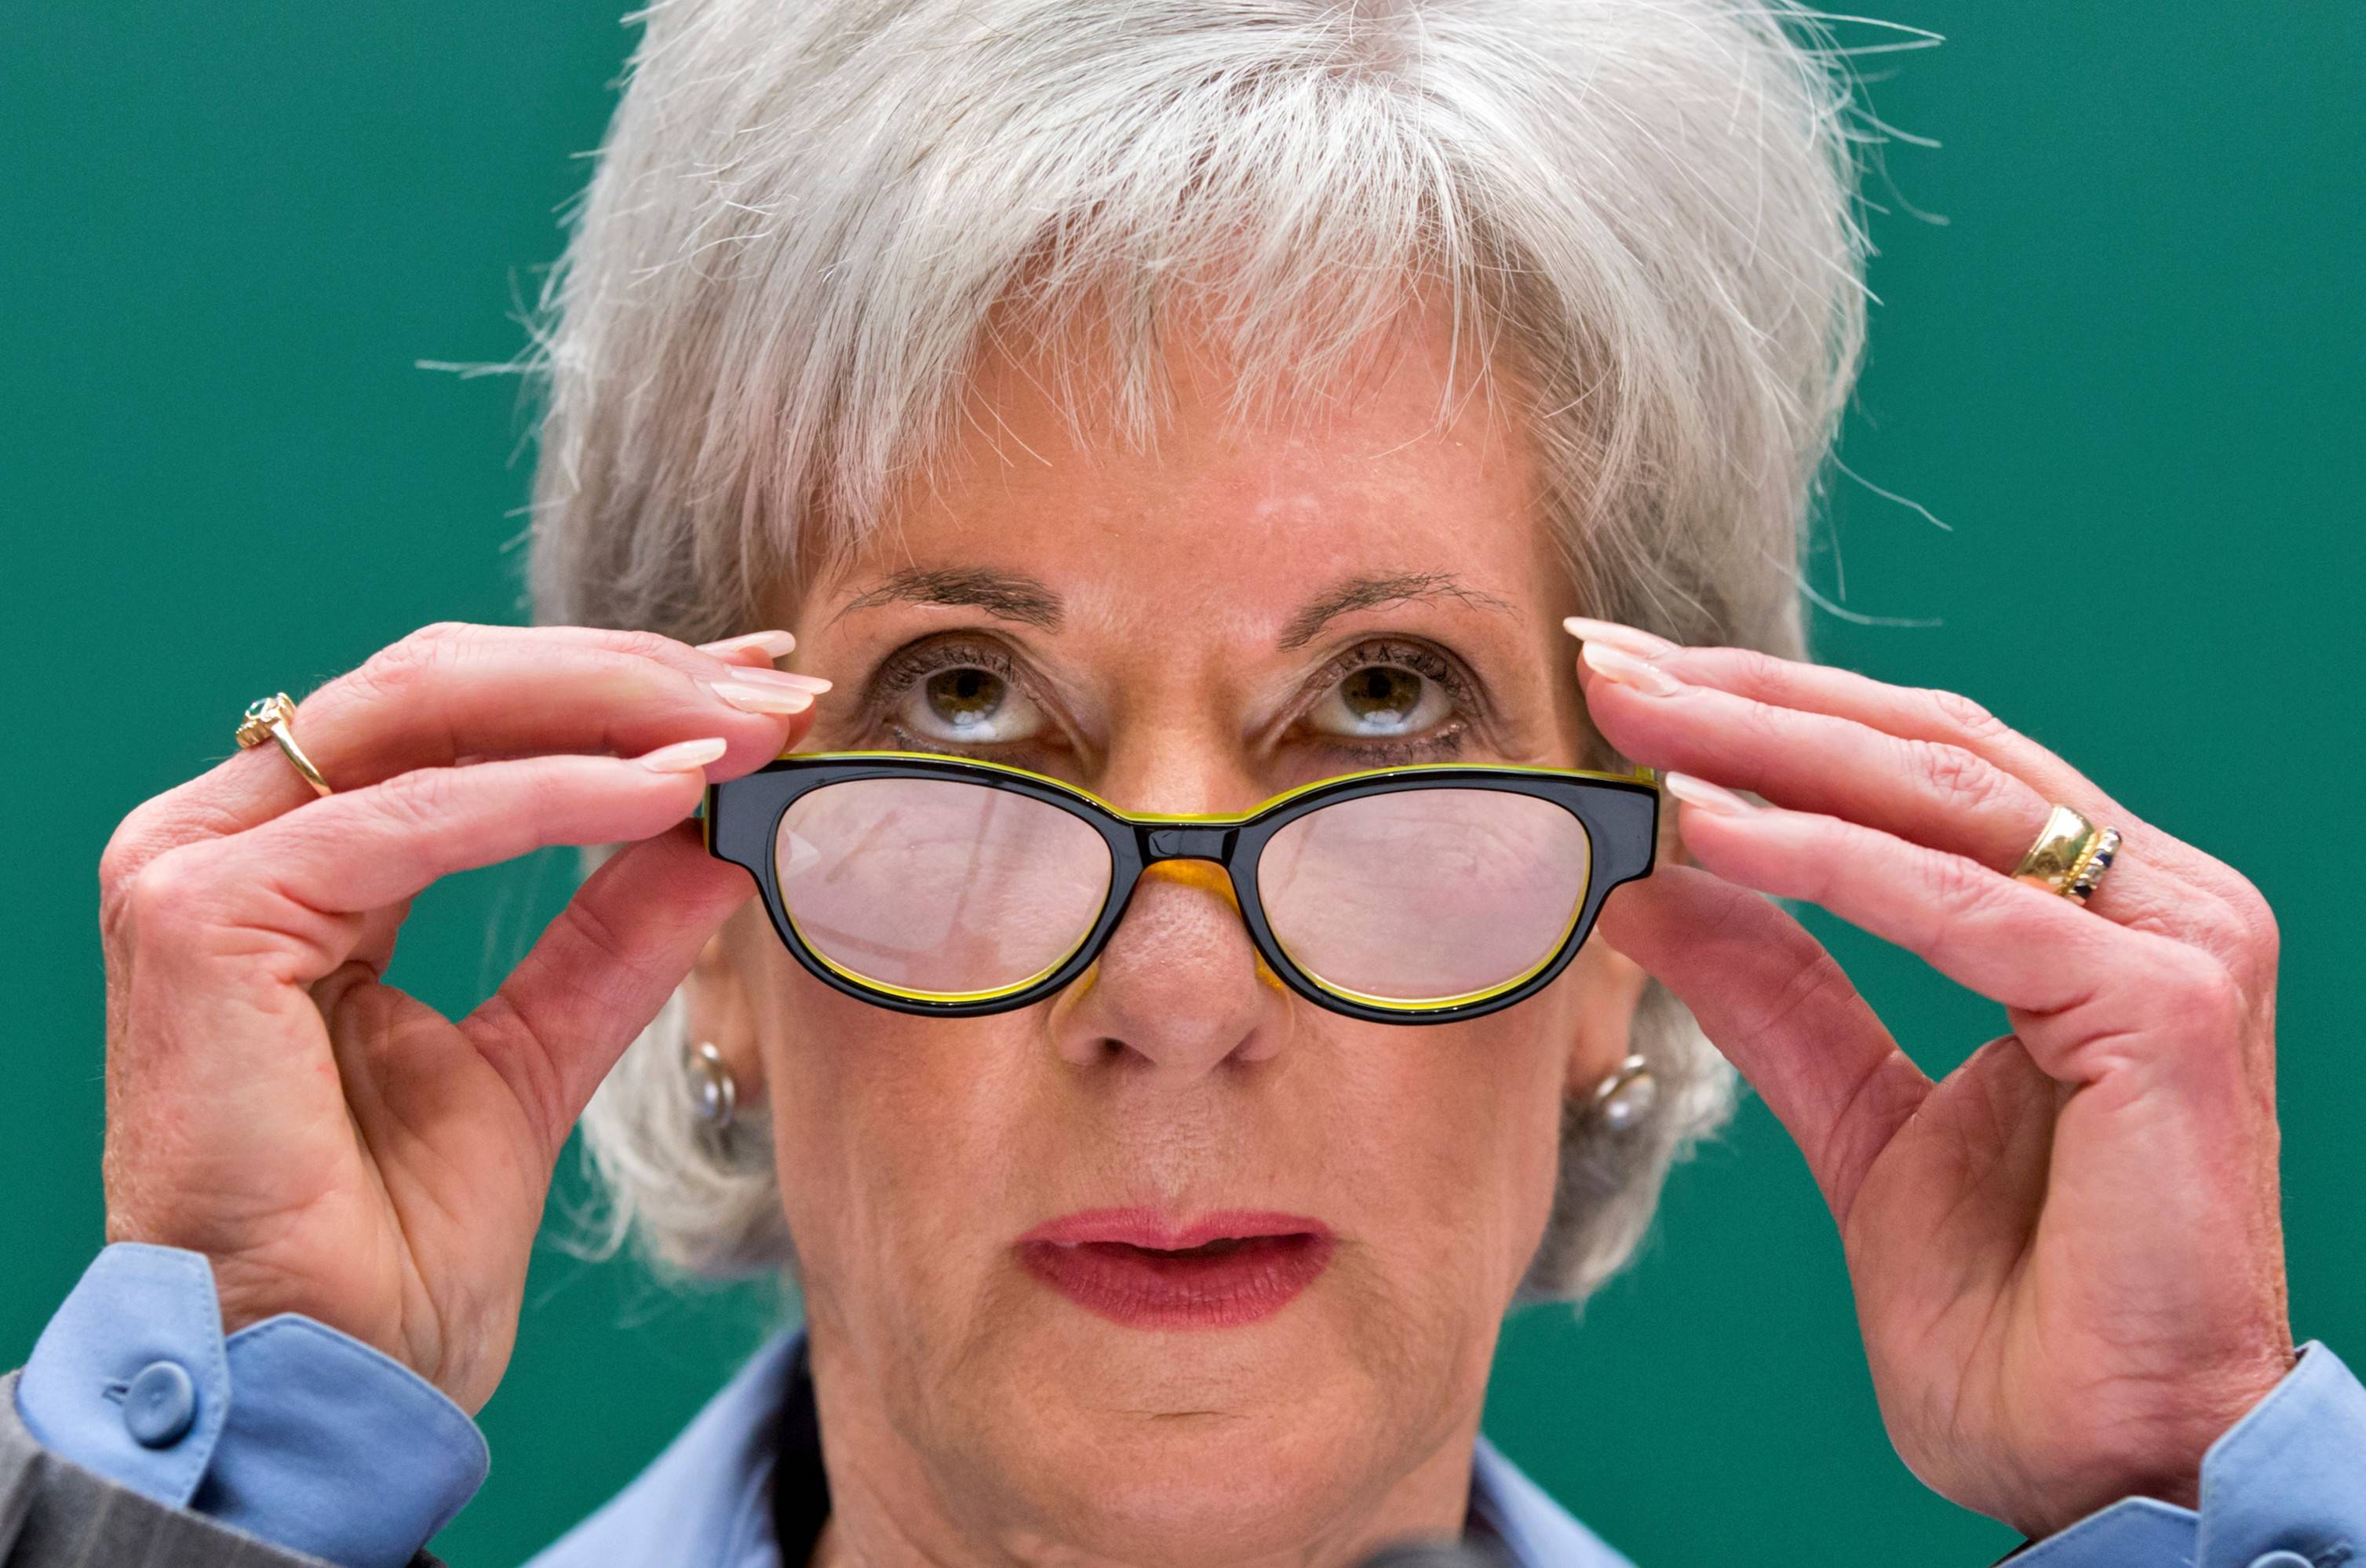 Sebelius resigning from top HHS post